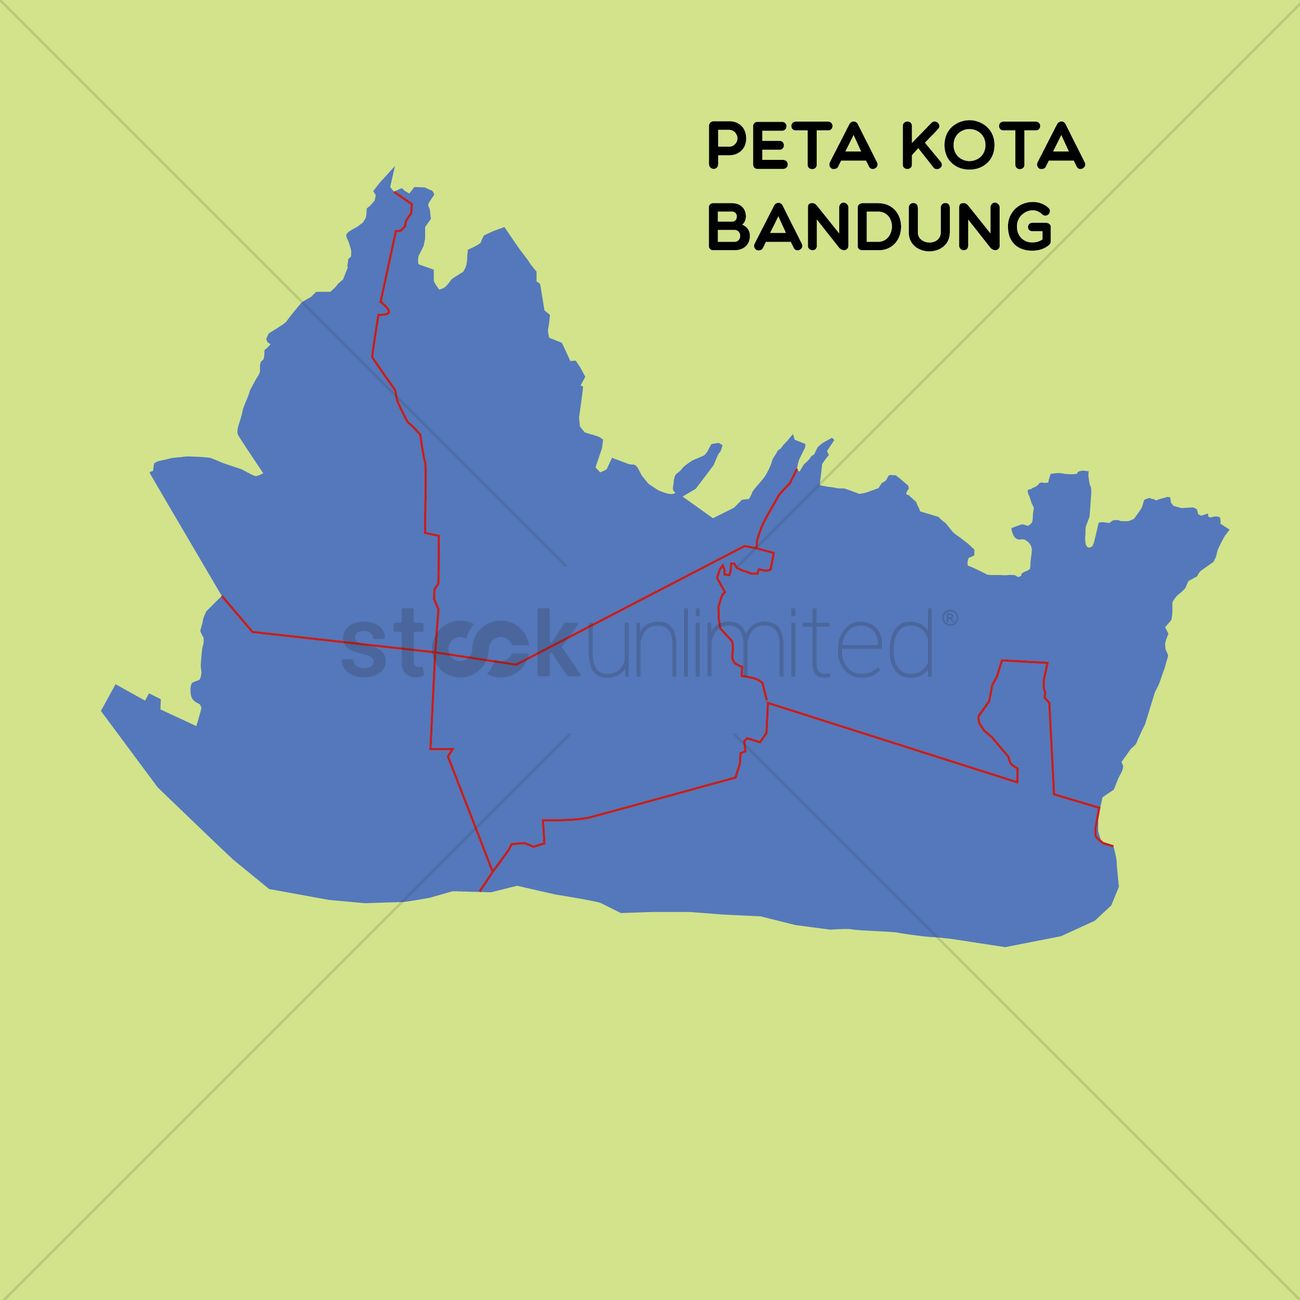 Map of kota bandung Vector Image 1480495 StockUnlimited